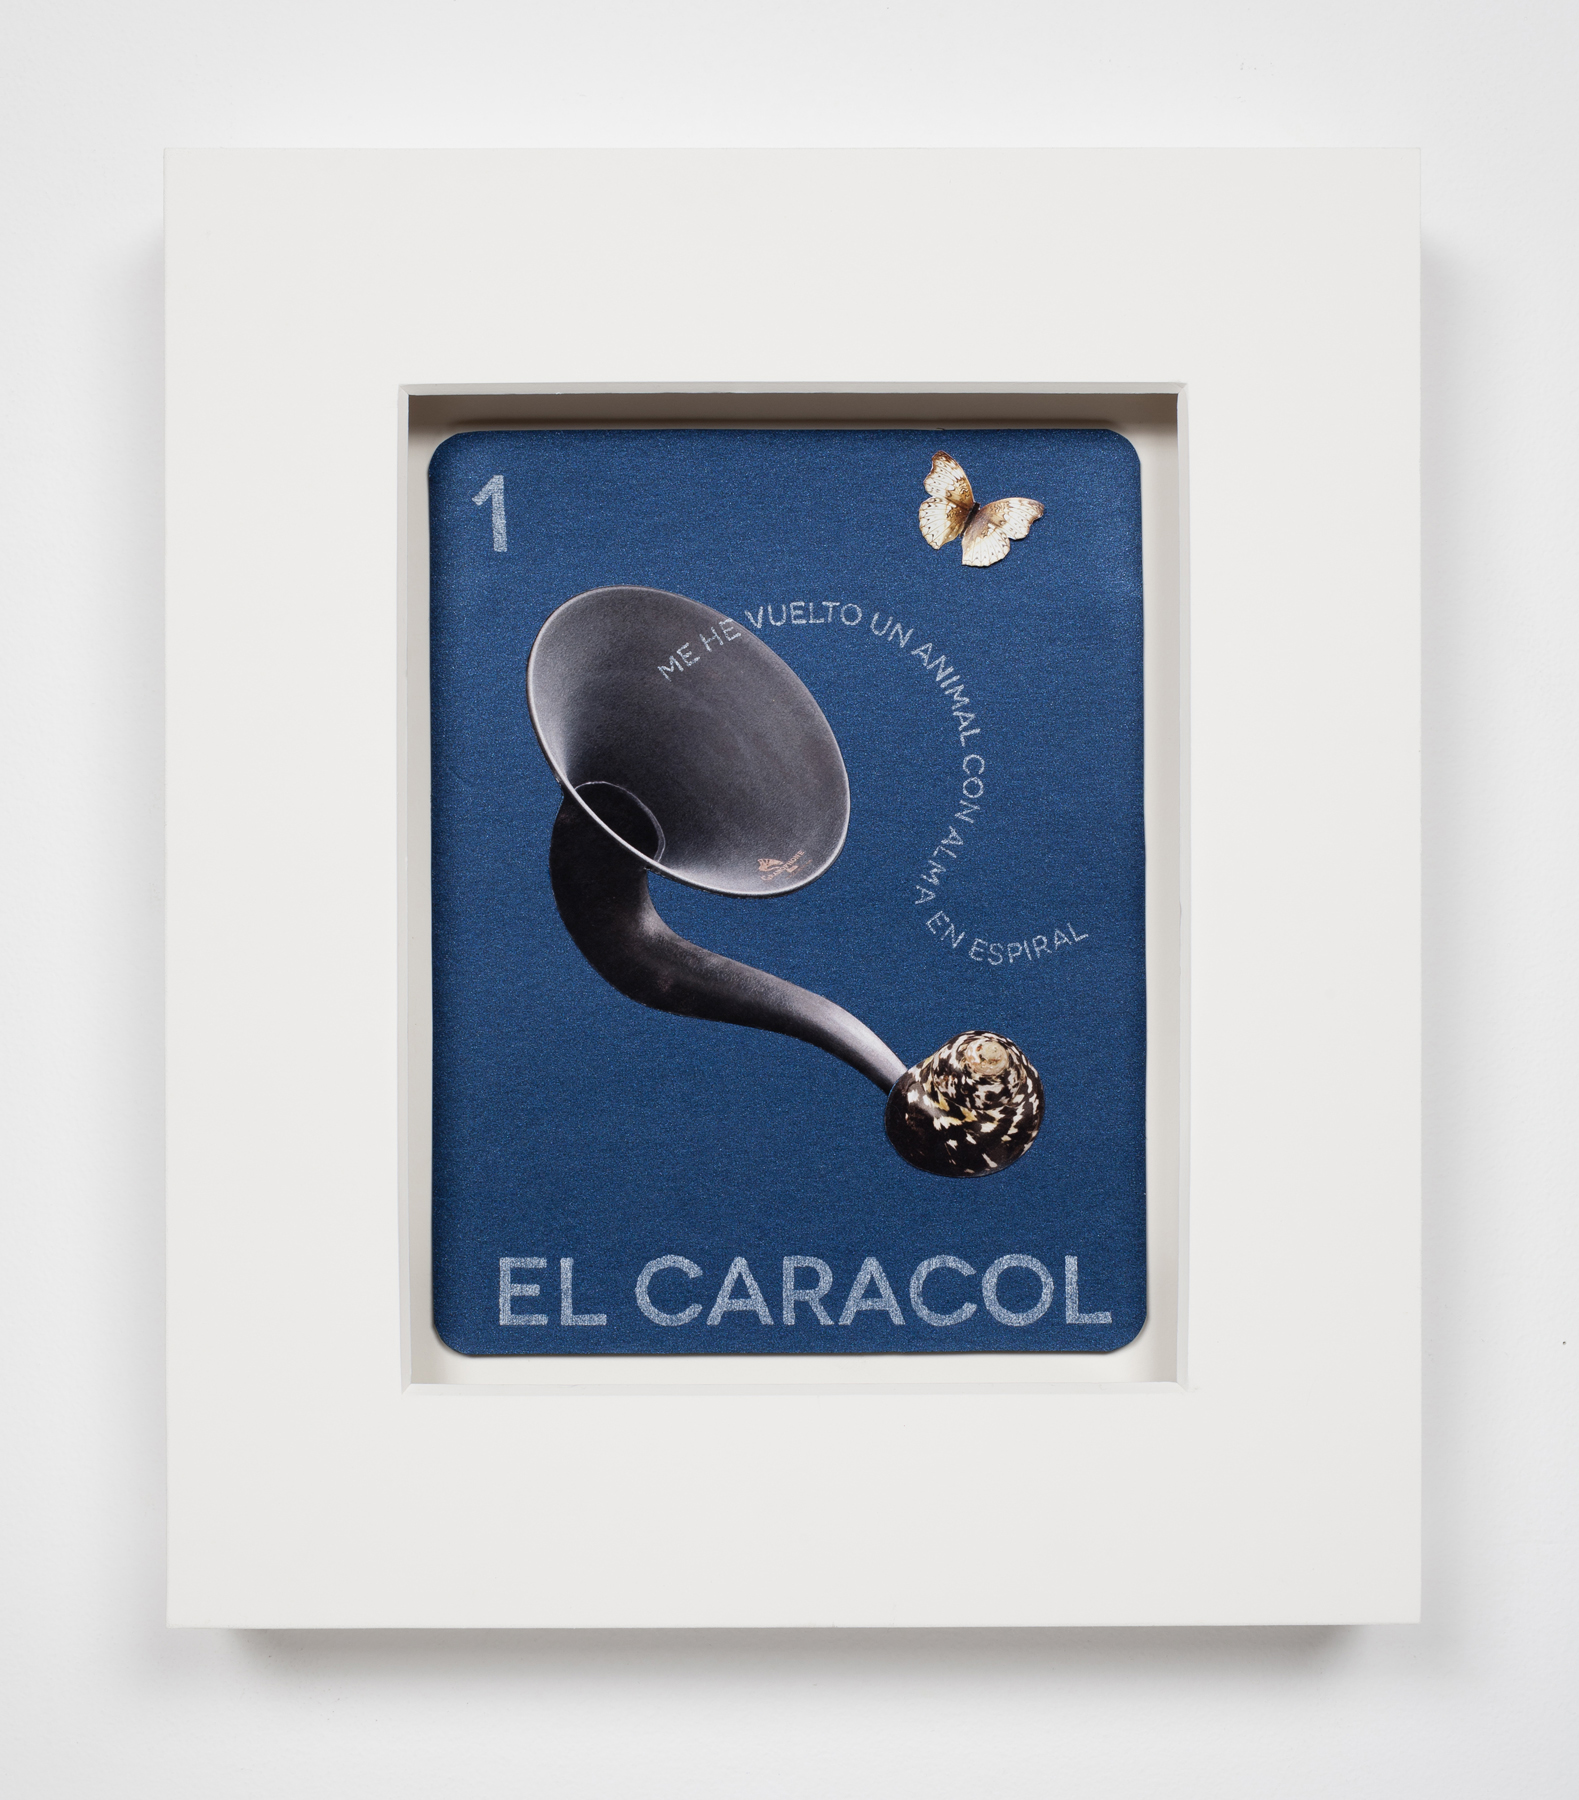 1 El Caracol (The Snail)